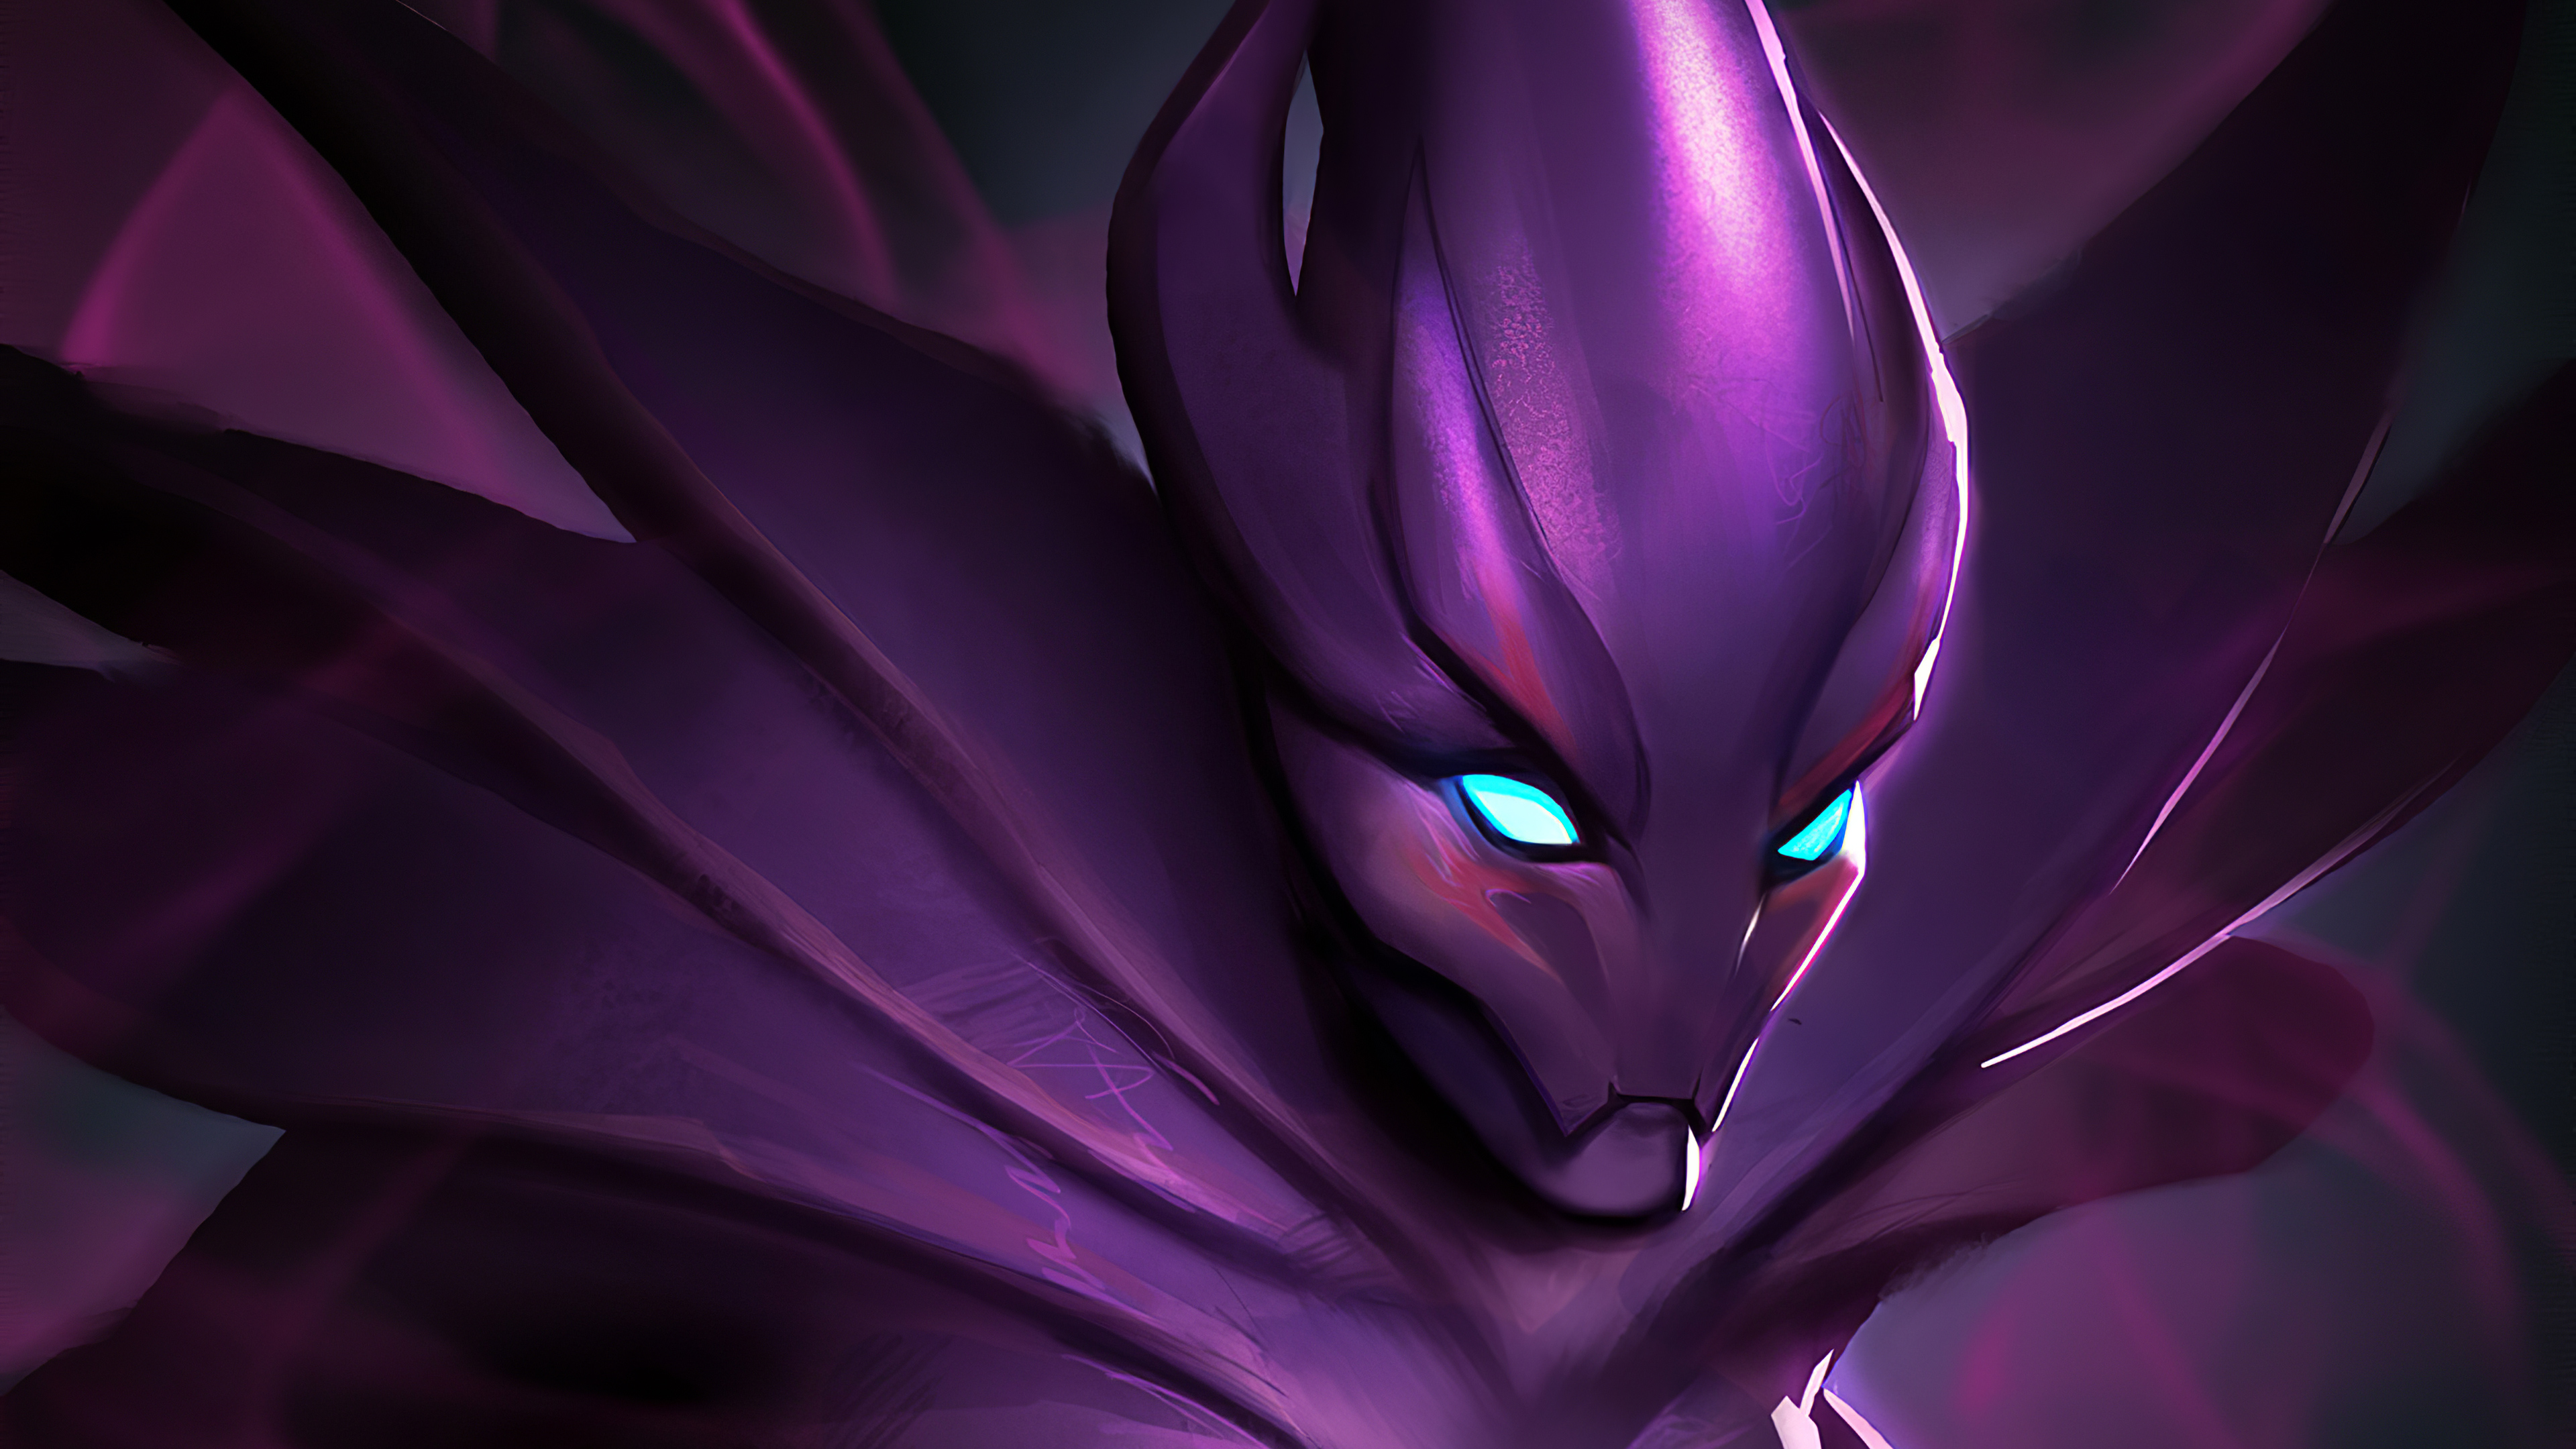 Dota 2 Spectre Fan Art 4k, HD Games, 4k Wallpapers, Images, Backgrounds,  Photos and Pictures